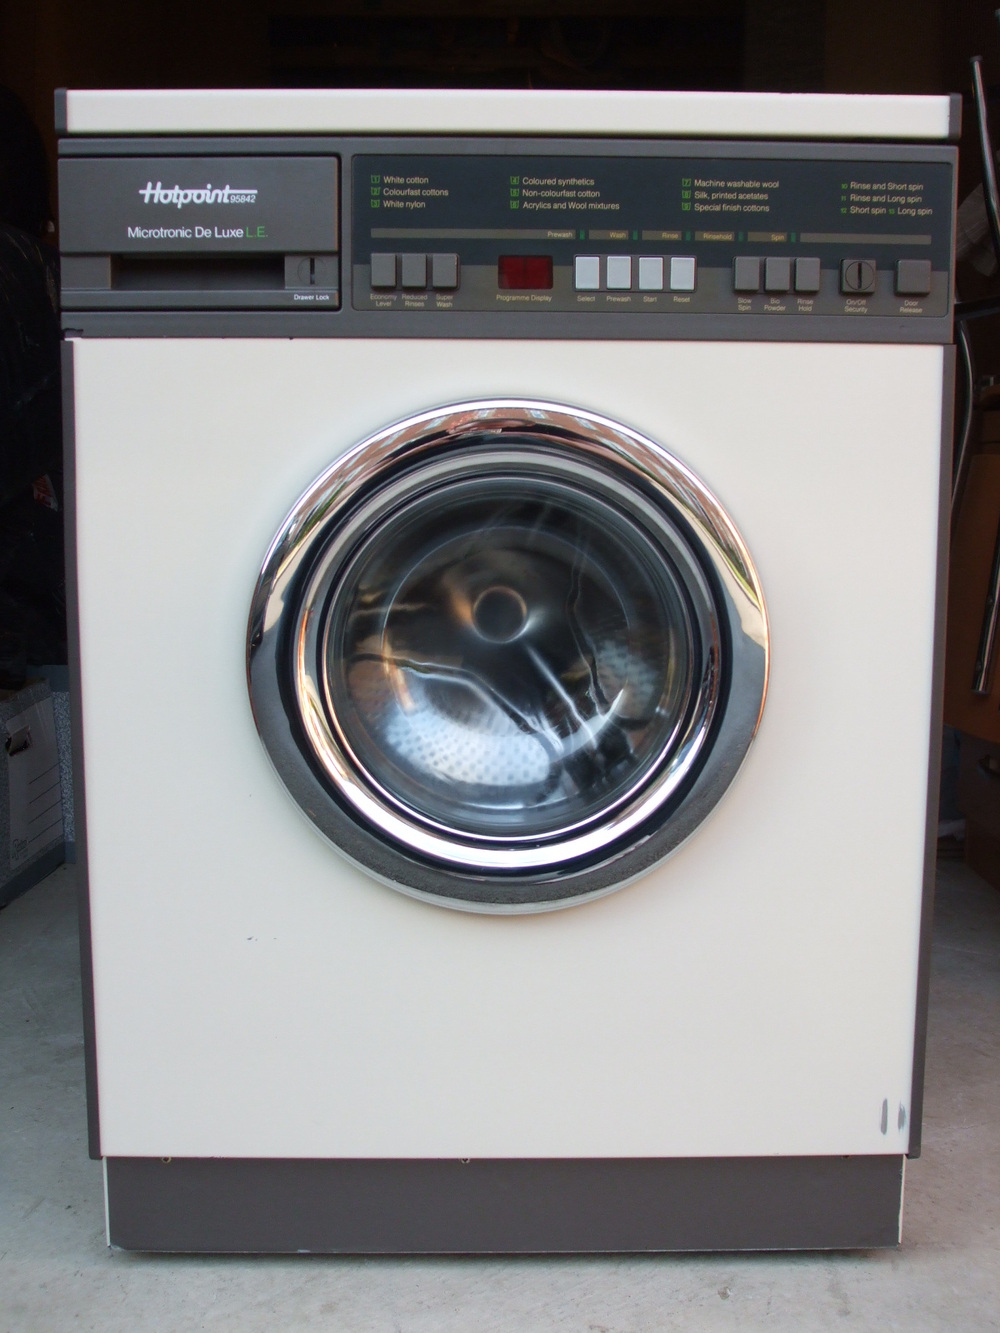 15 Photos That Show The Evolution Of The Washing Machine